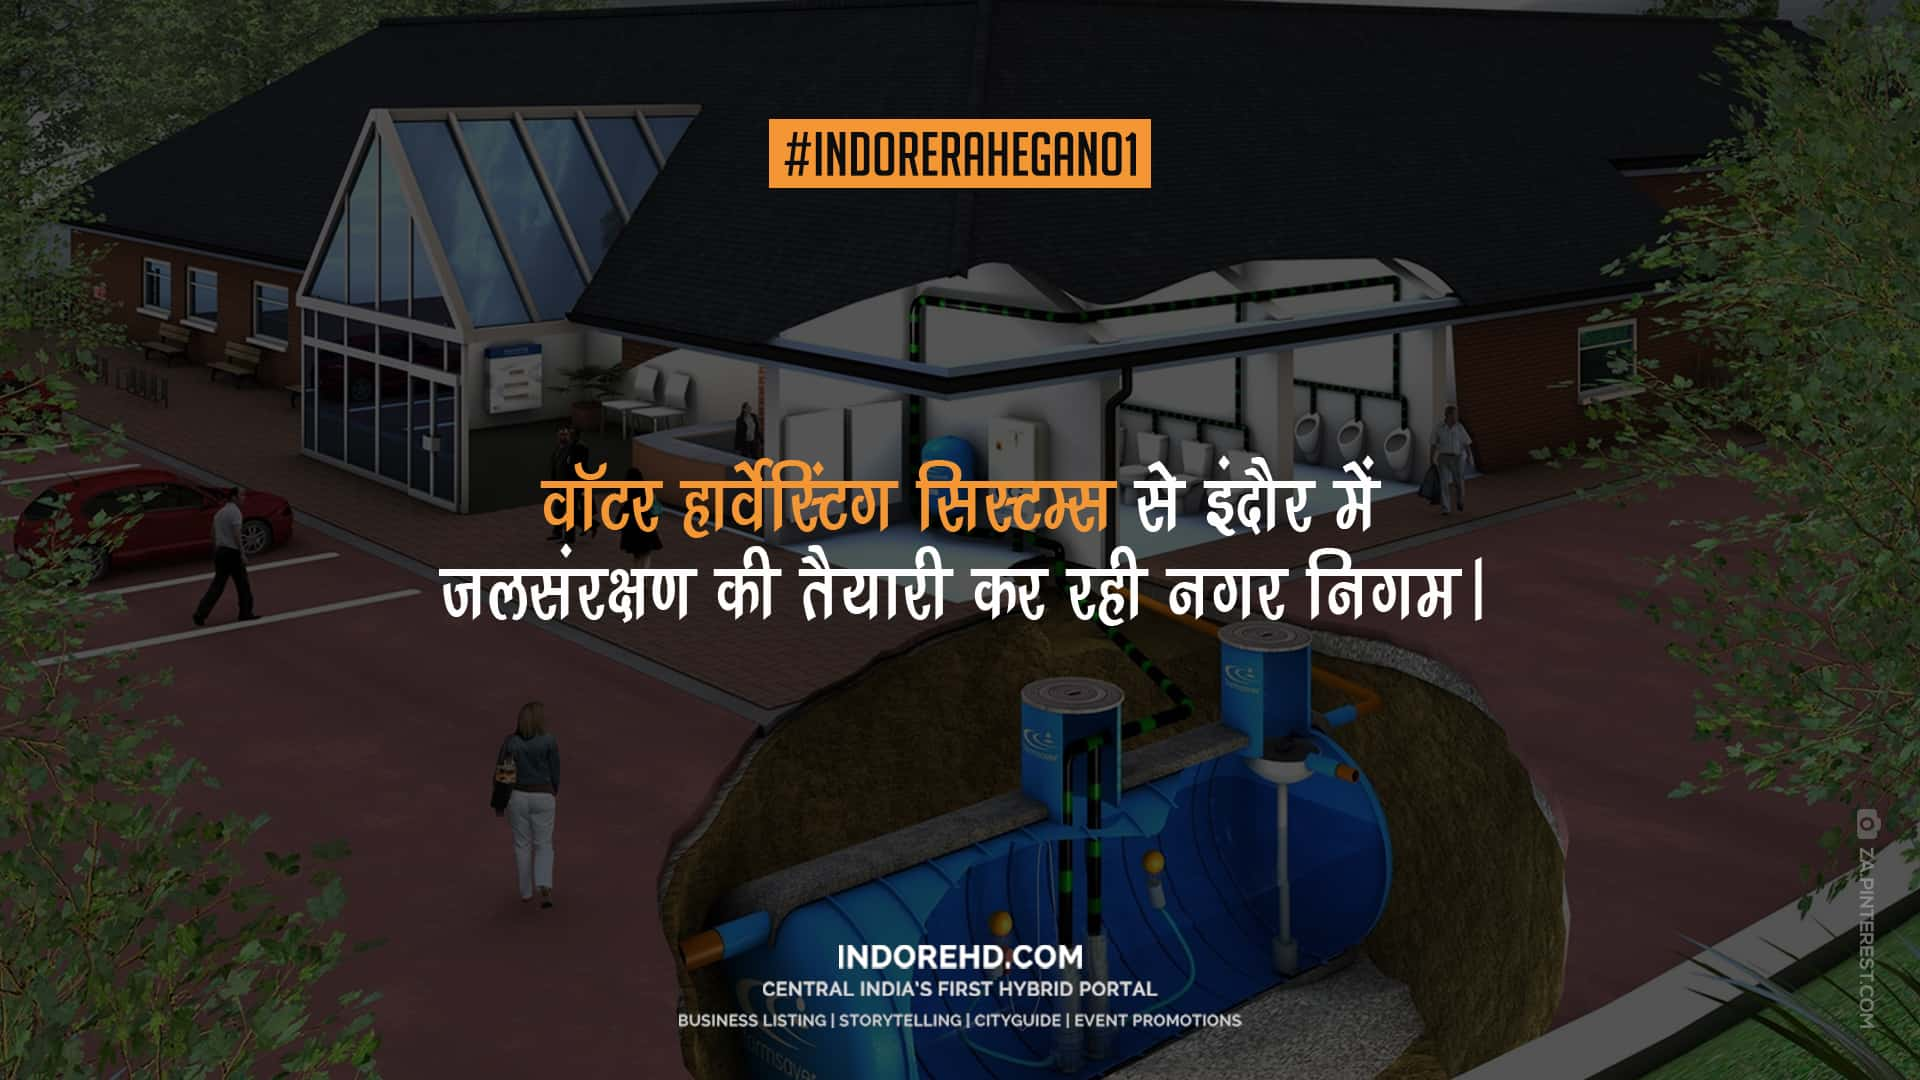 IMC-Water-Harvesting-systems-Indore-IndoreHD